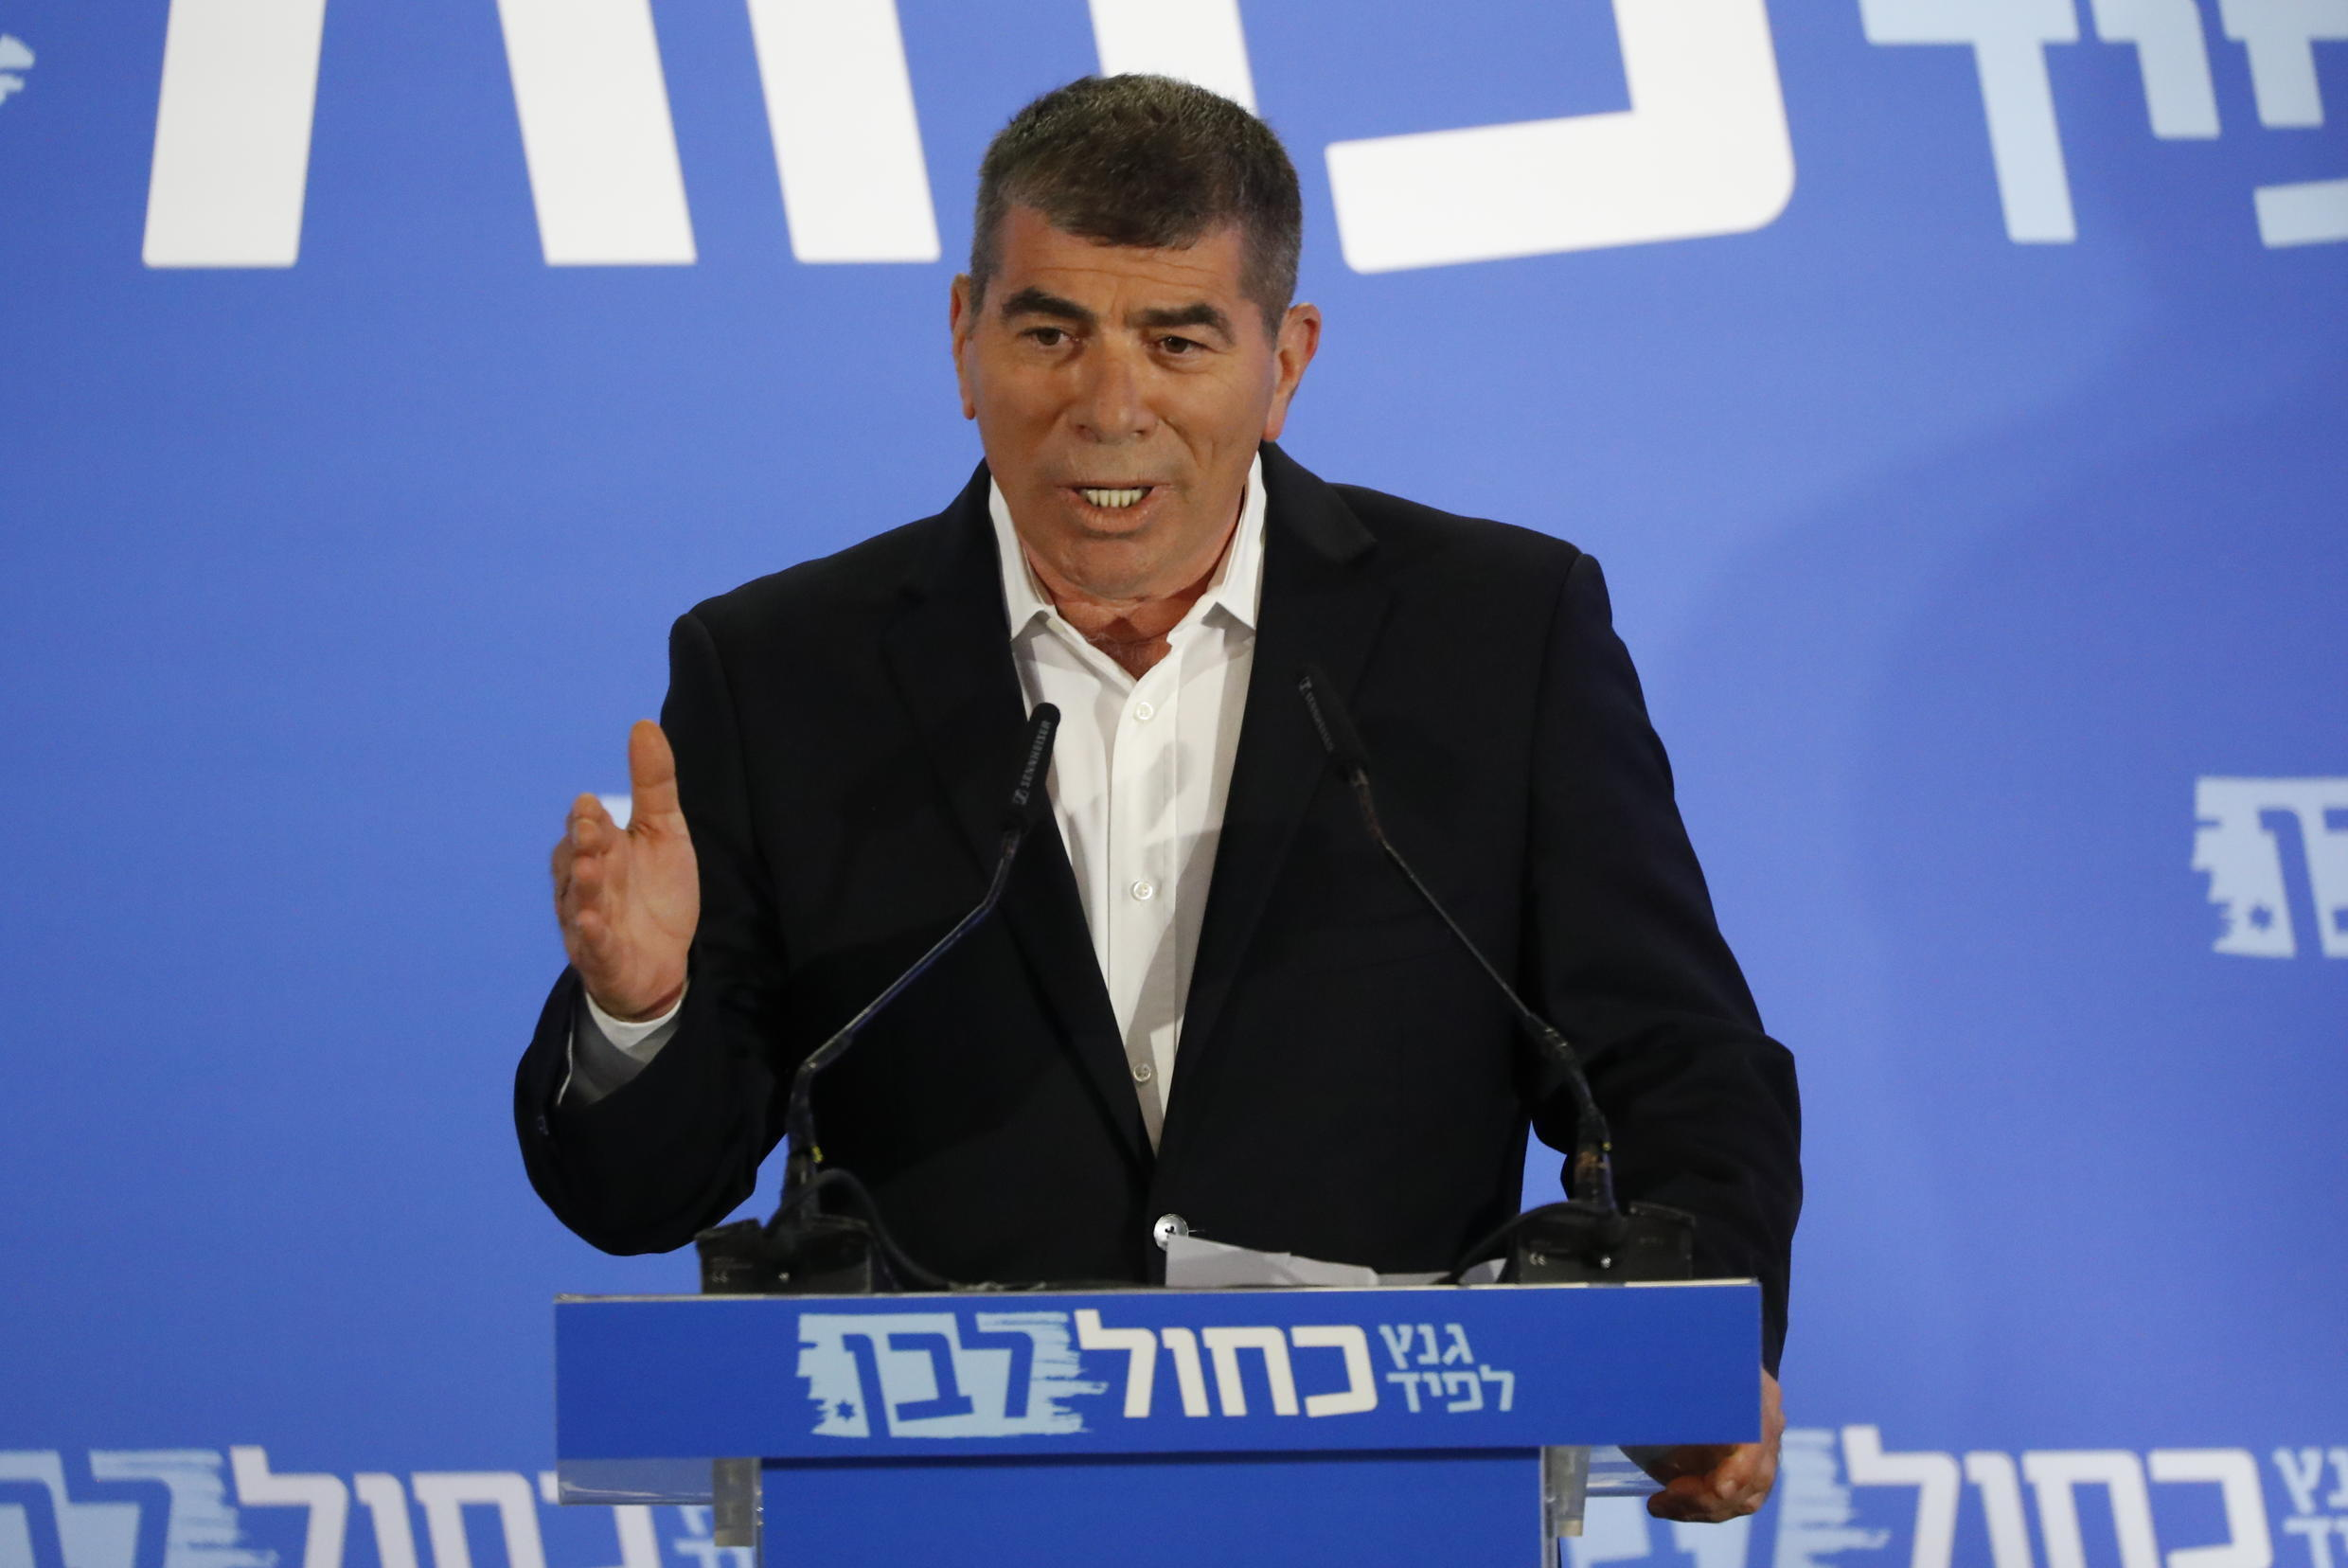 A file photo from February 2019 shows former Israeli military chief of staff Gabi Ashkenazi, the country's incoming foreign ministter